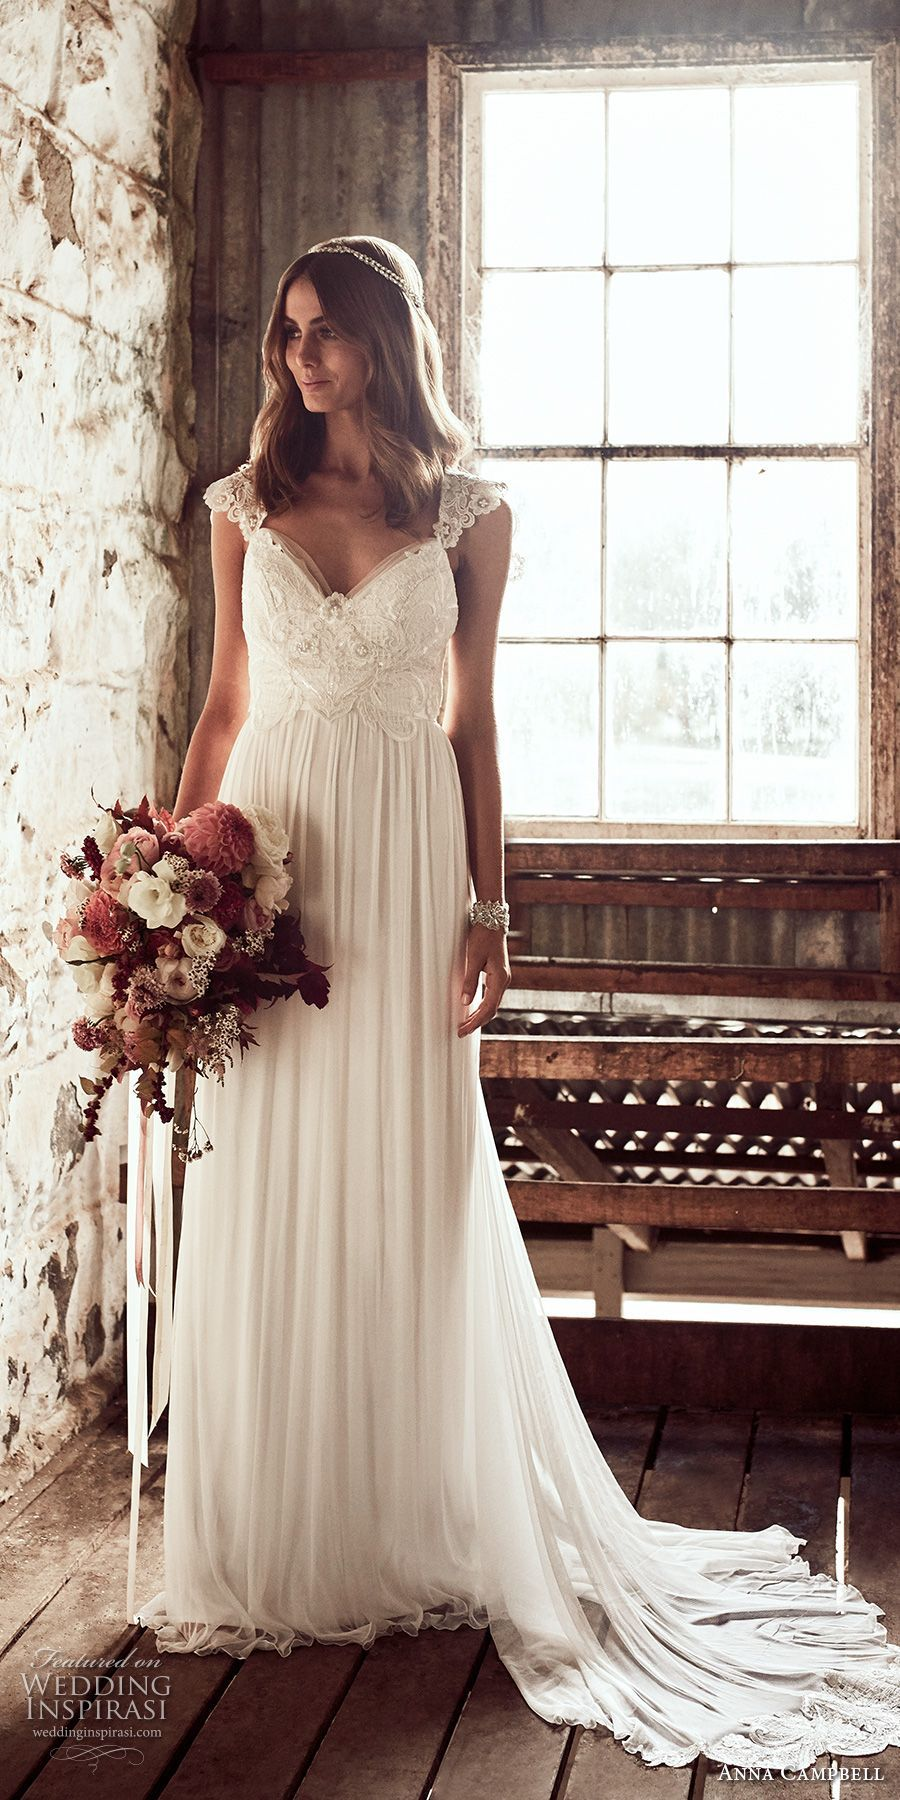 Lace cap sleeve a line wedding dress  anna campbell  bridal cap sleeves sweetheart neckline heavily